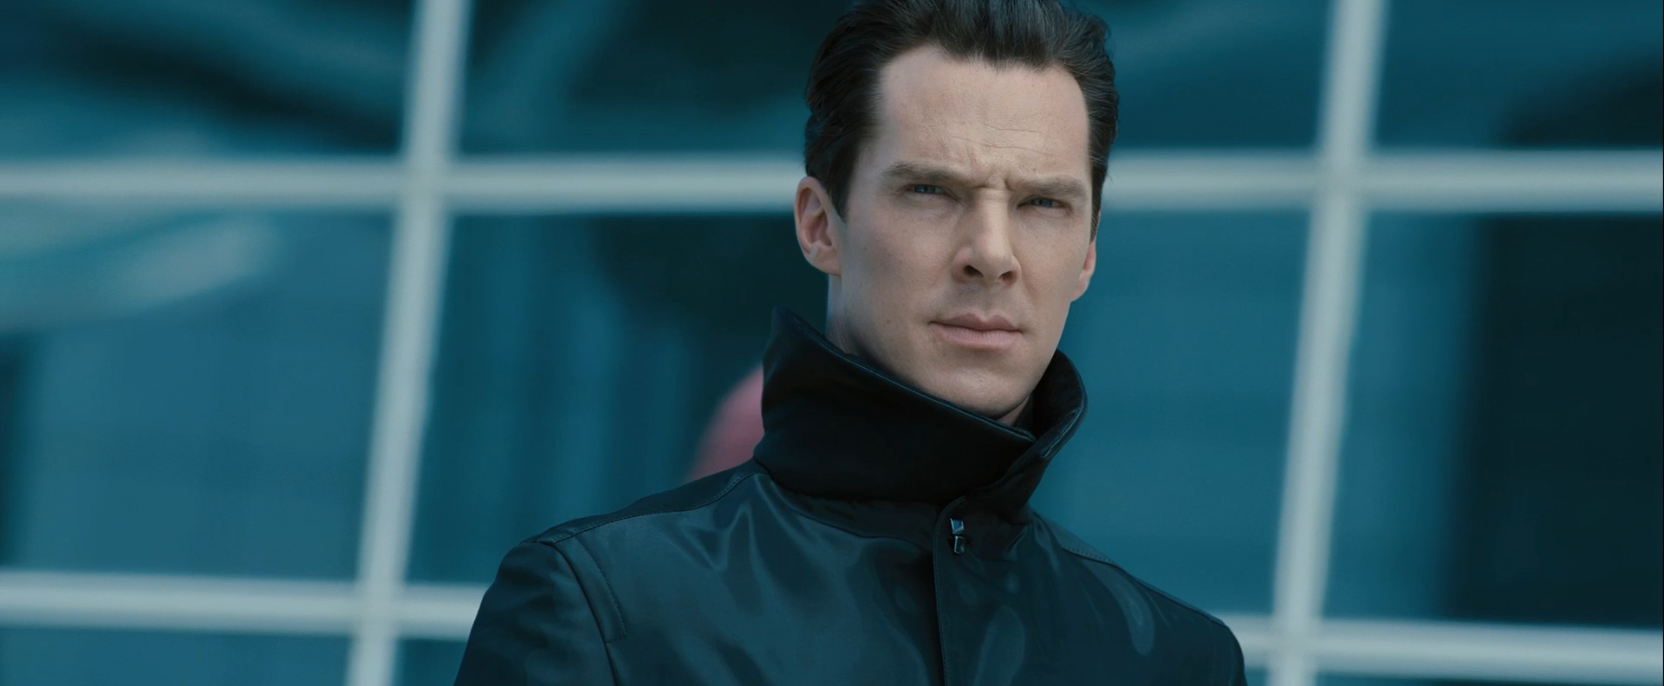 Benedict Cumberbatch as terrorist John Harrison - Star Trek Into Darkness